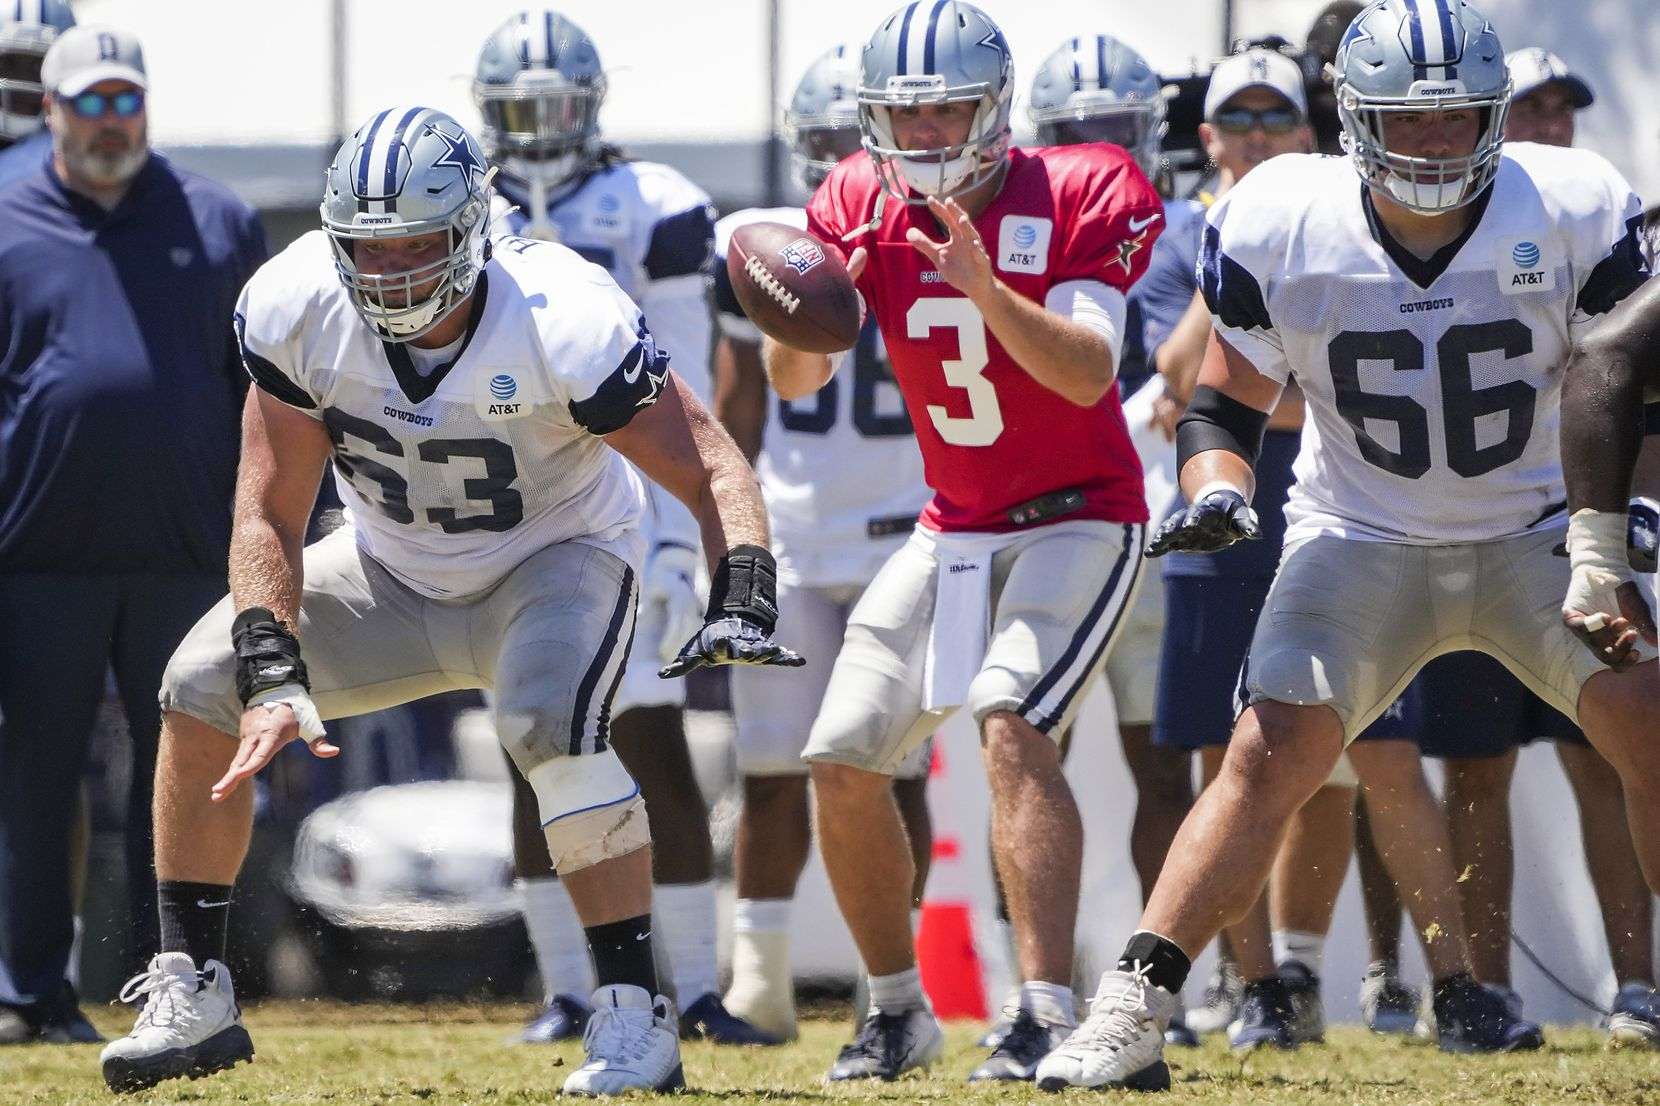 Dallas Cowboys center Tyler Biadasz (63) snaps the ball to quarterback Garrett Gilbert (3) as guard Connor McGovern (66) provides protection during a practice at training camp on Sunday, Aug. 1, 2021, in Oxnard, Calif. (Smiley N. Pool/The Dallas Morning News)